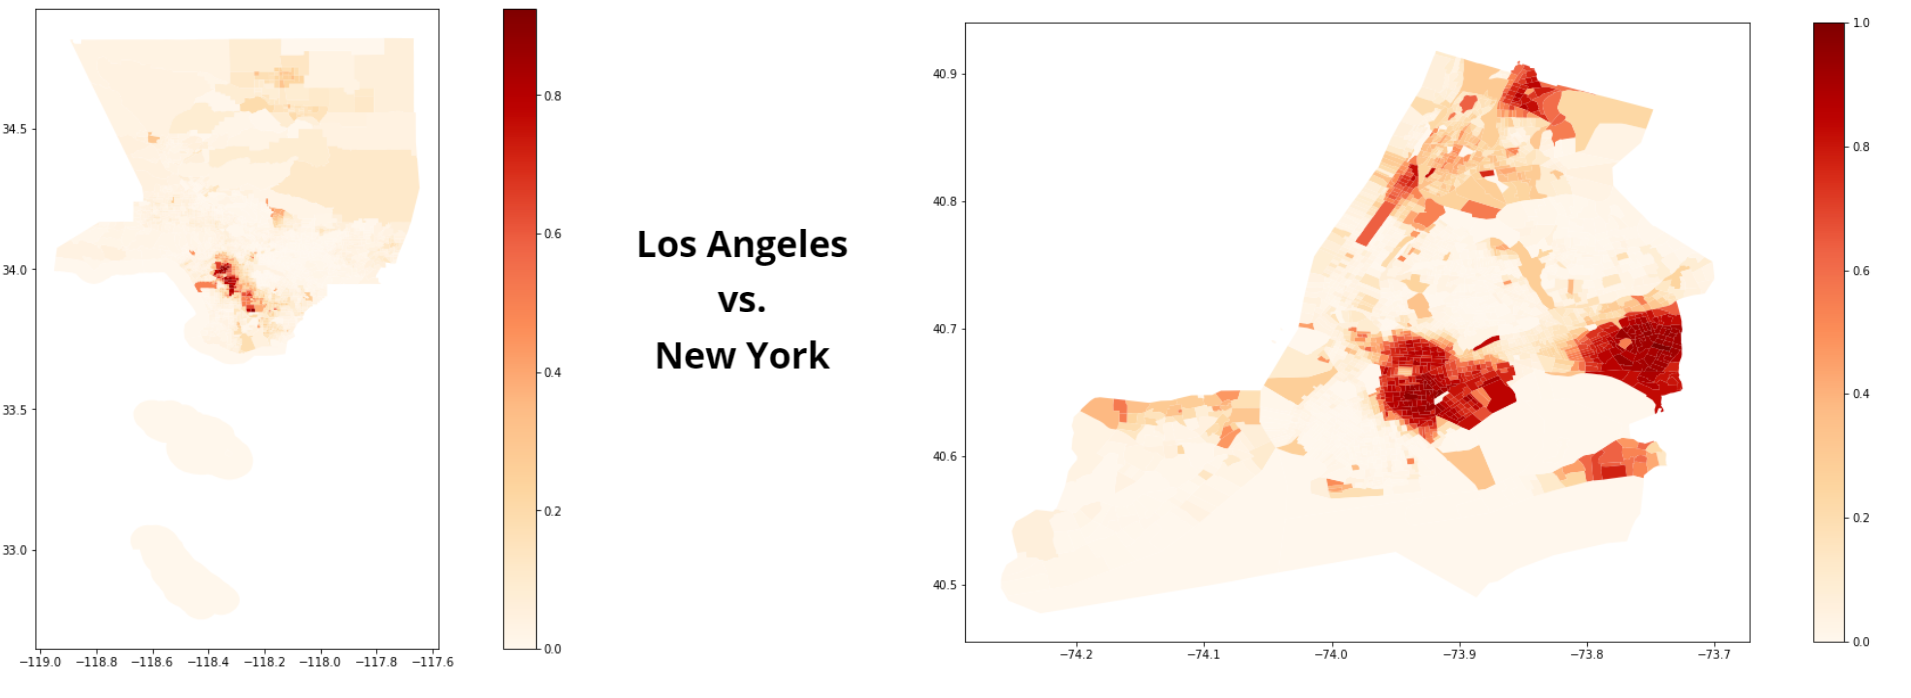 Los Angeles and New York Comparison Illustration